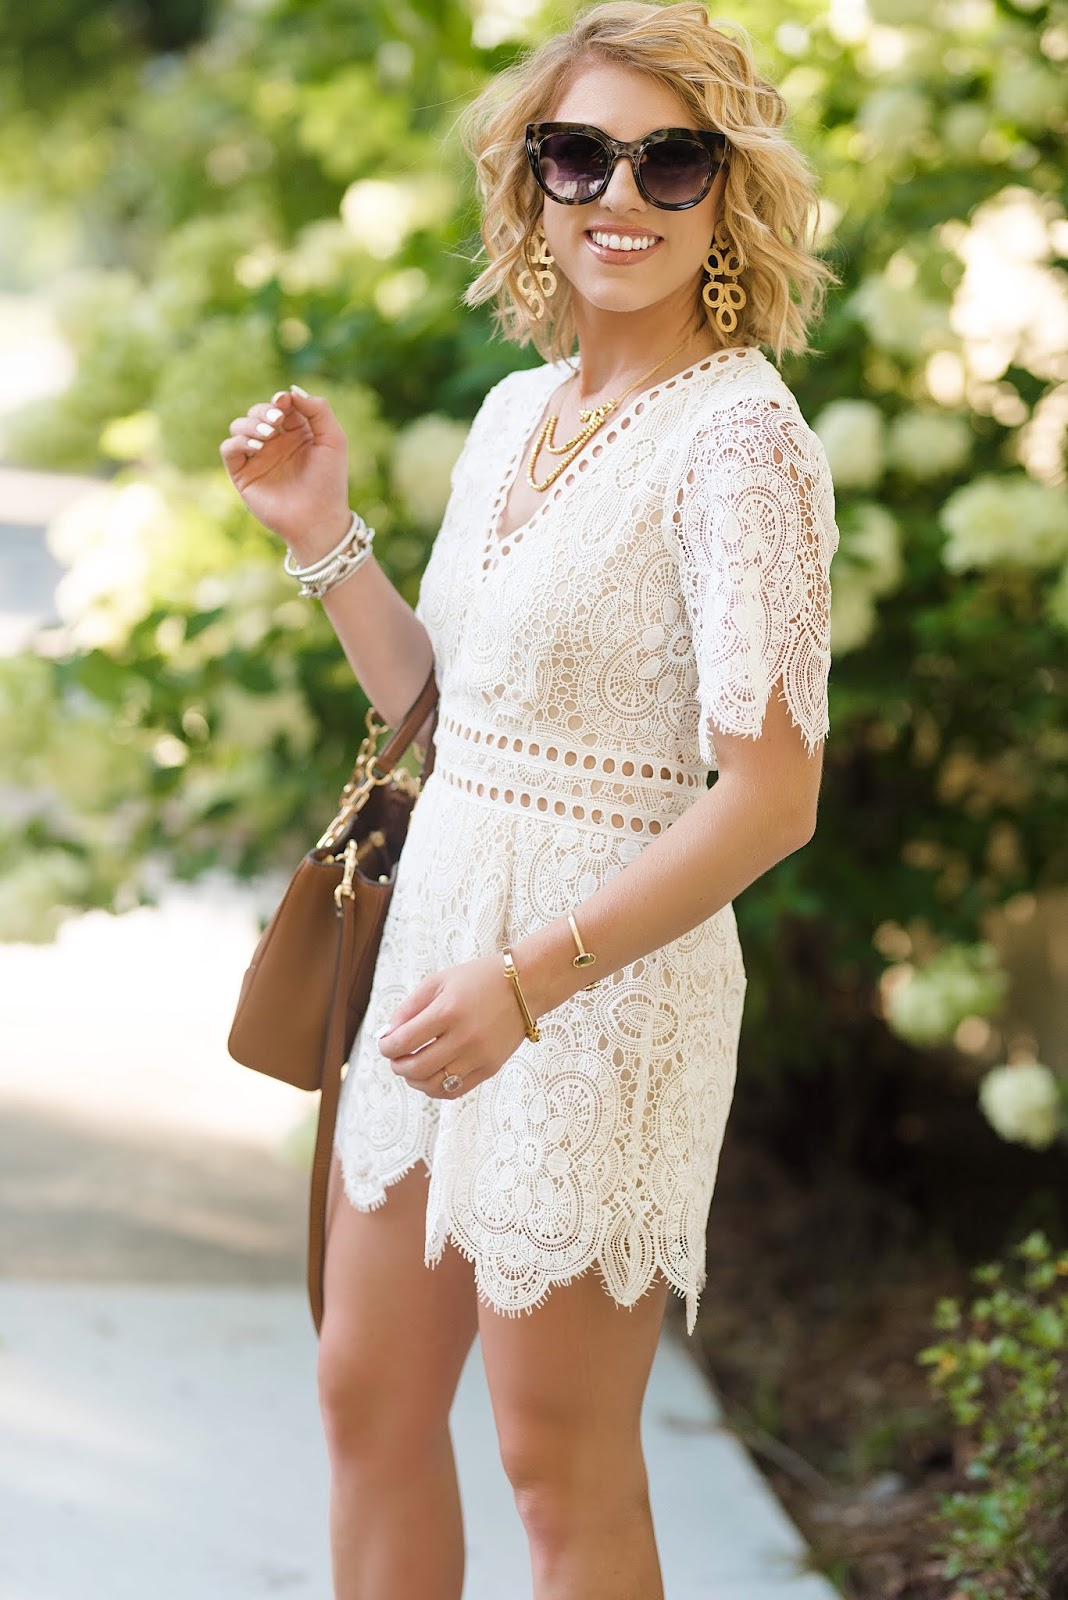 Nordstrom Anniversary Sale Lace Romper, Necklaces, Sunglasses and Tory Burch Bag - Something Delightful